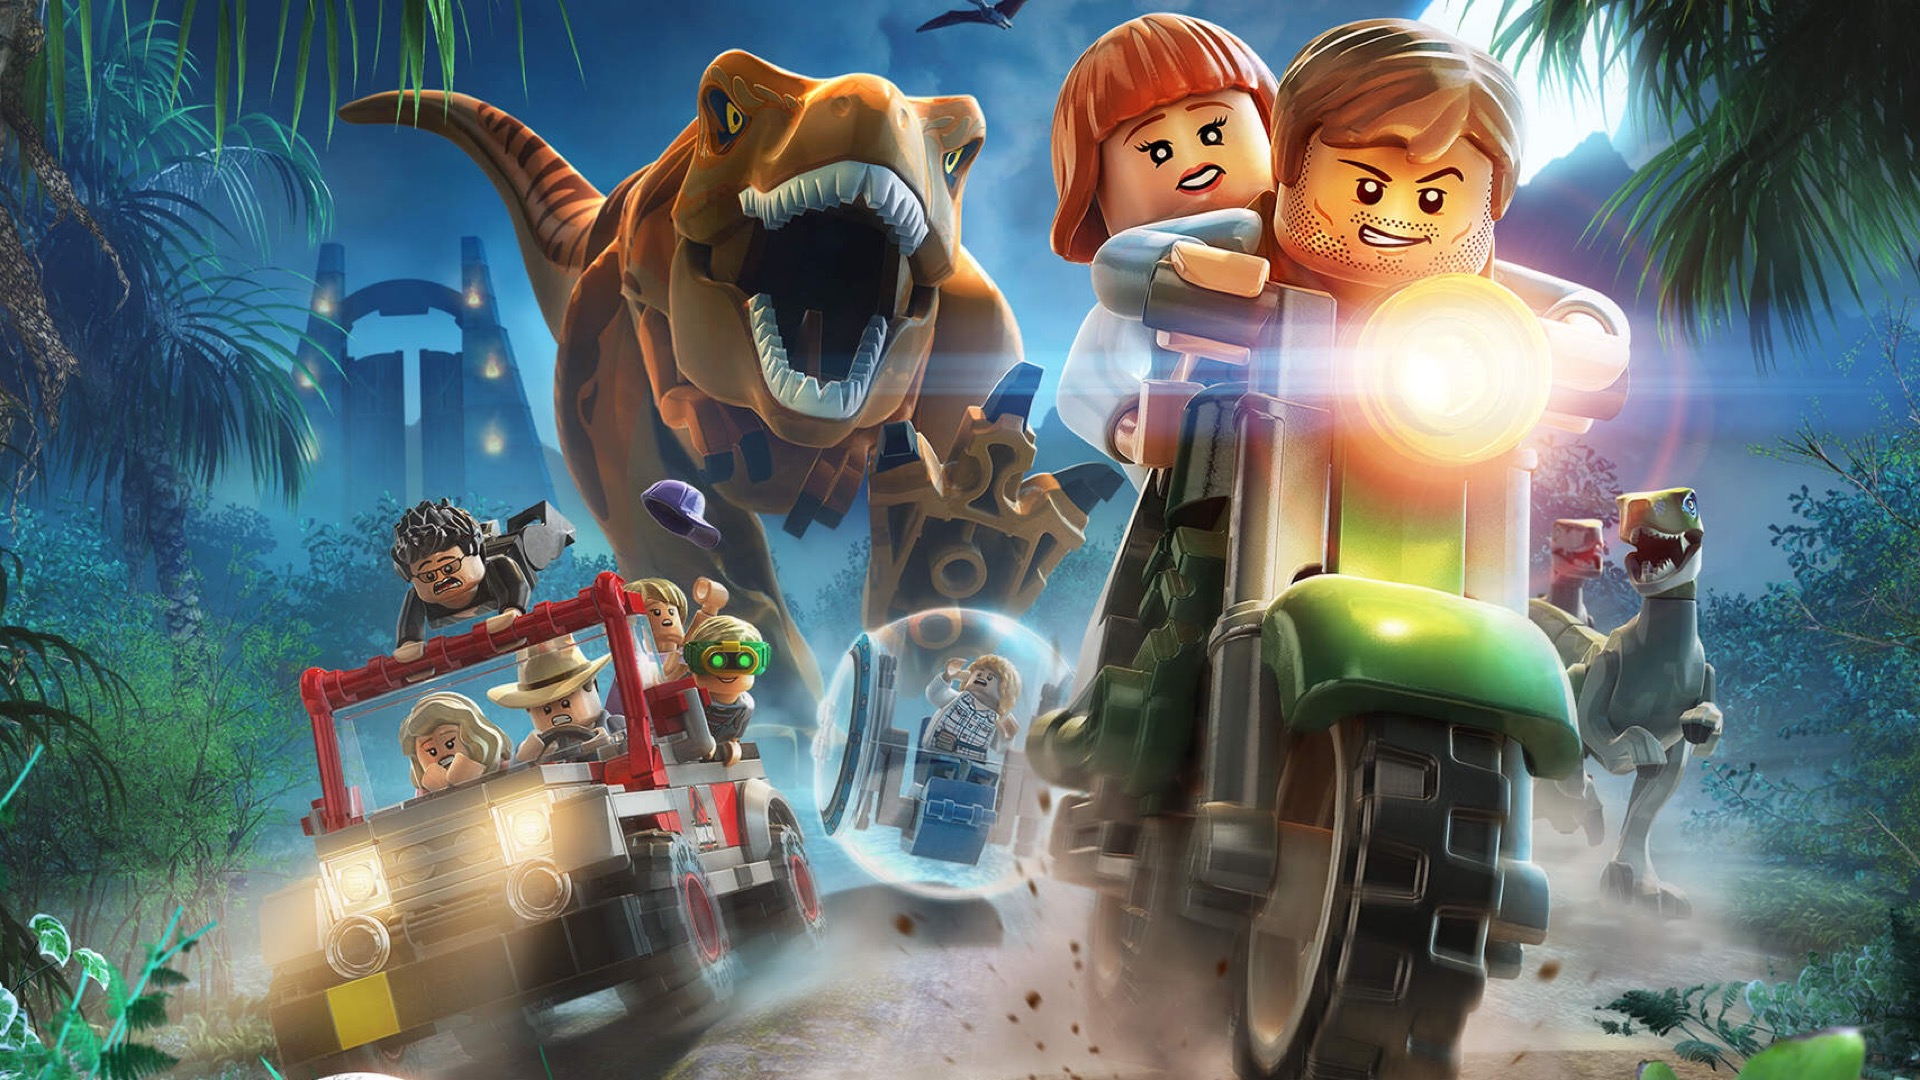 Photo of LEGO Jurassic World Comes to iOS, Includes 3D Touch Support